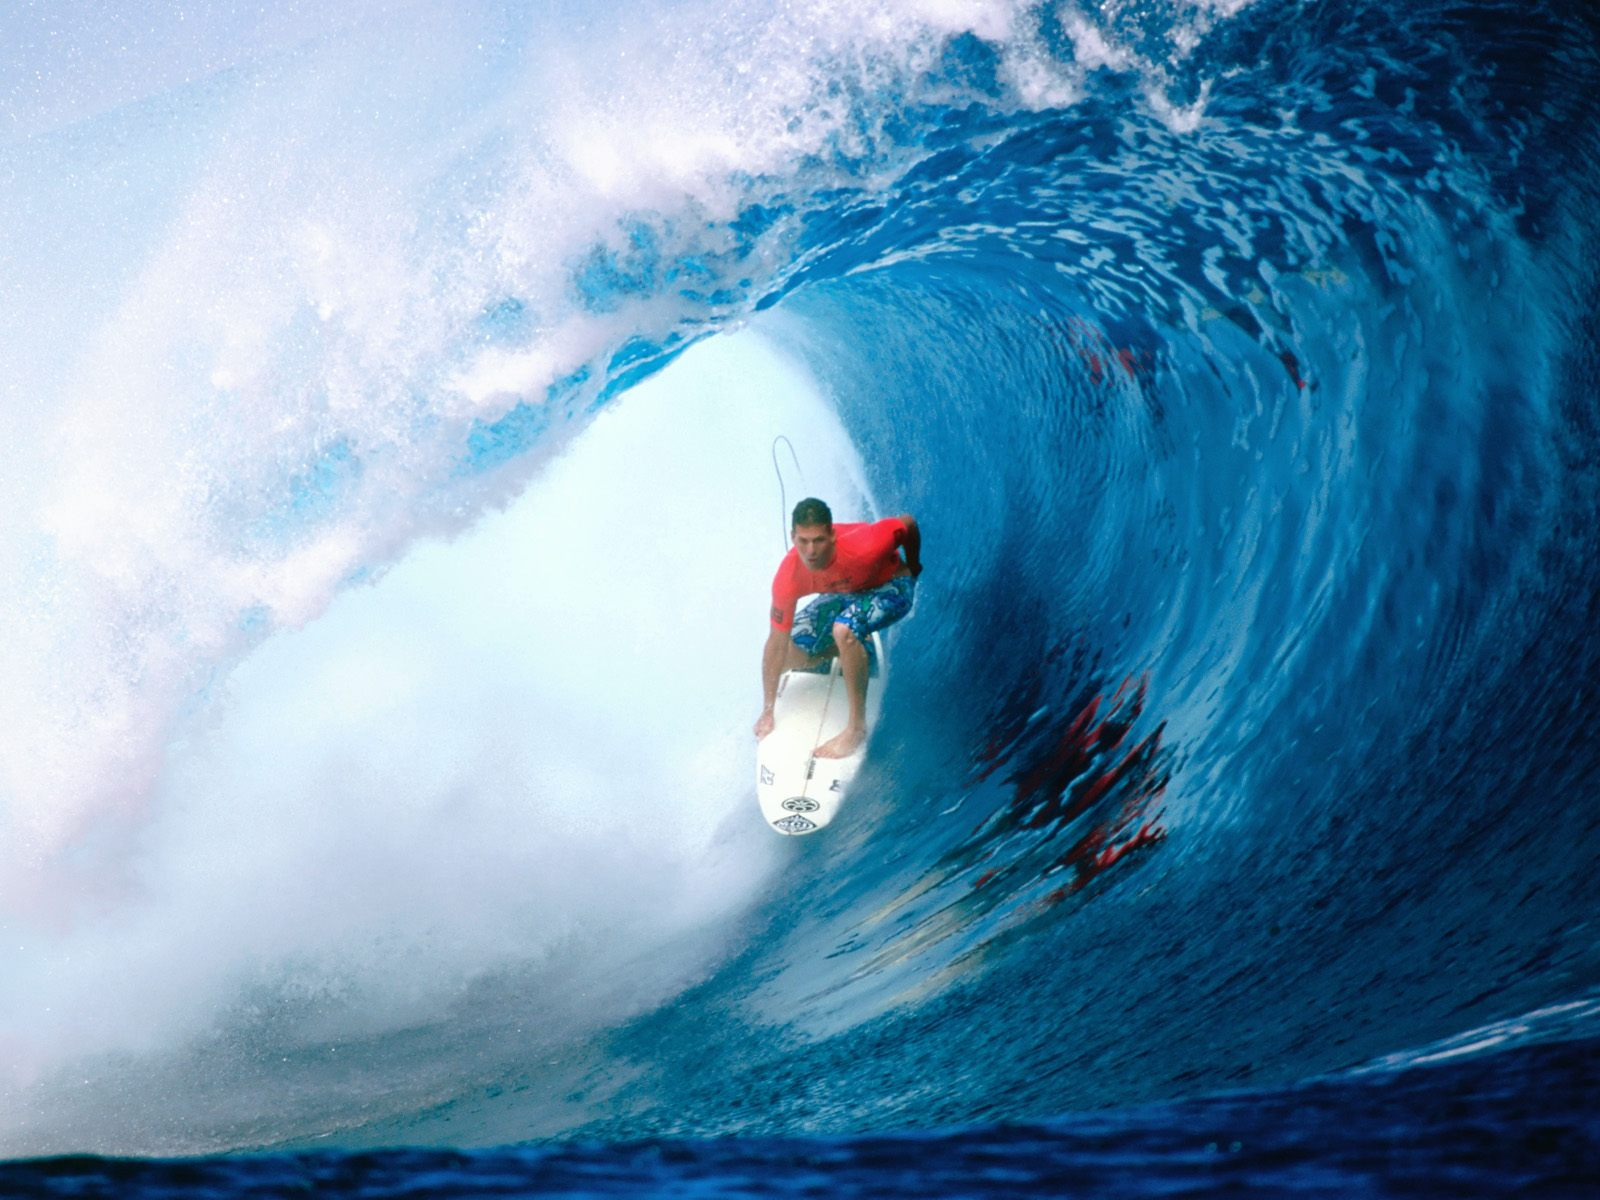 wallpaper 1 surfing wallpaper 2 surfing wallpaper 3 surfing wallpaper 1600x1200